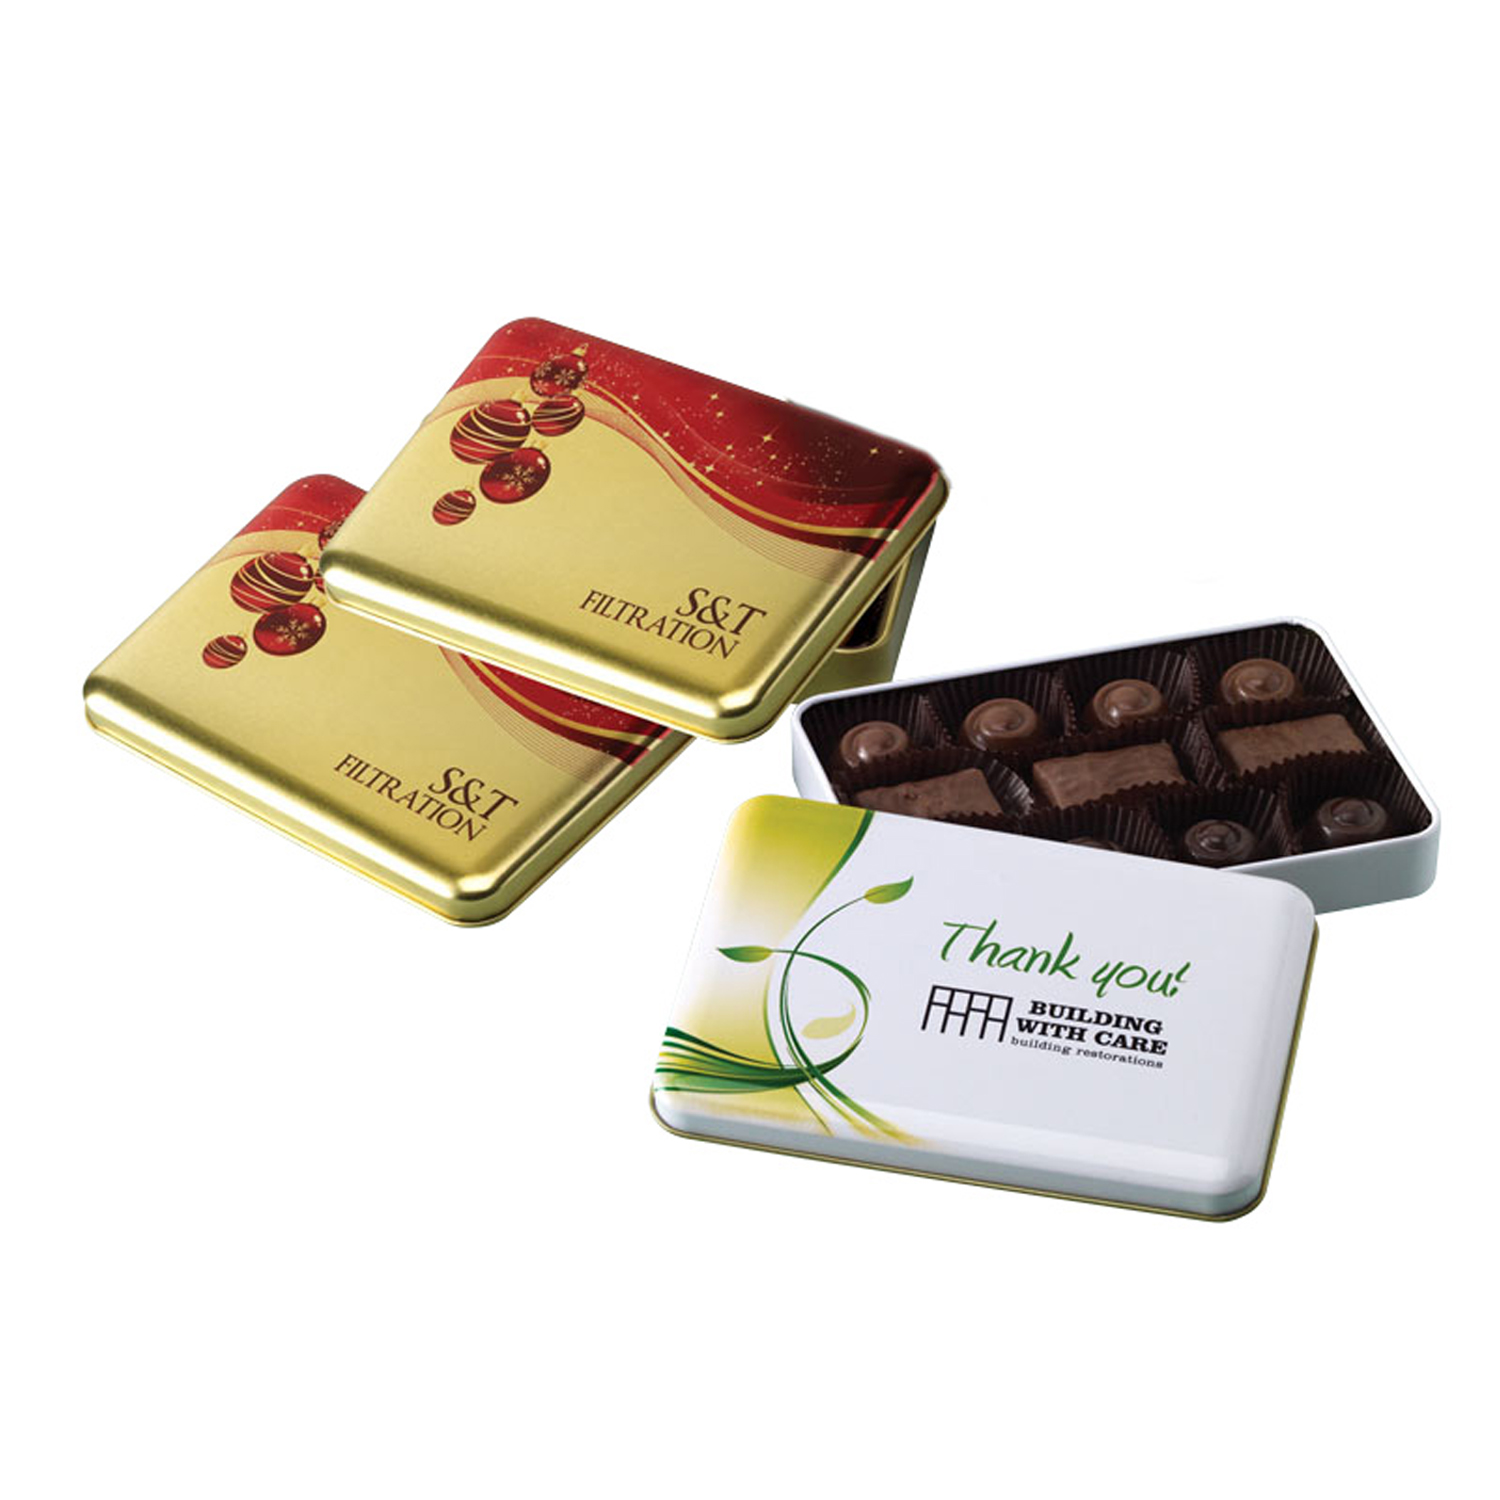 One of a Kind Tin with Truffle/Toffee Assortment, 325-ATRF, One Colour Imprint